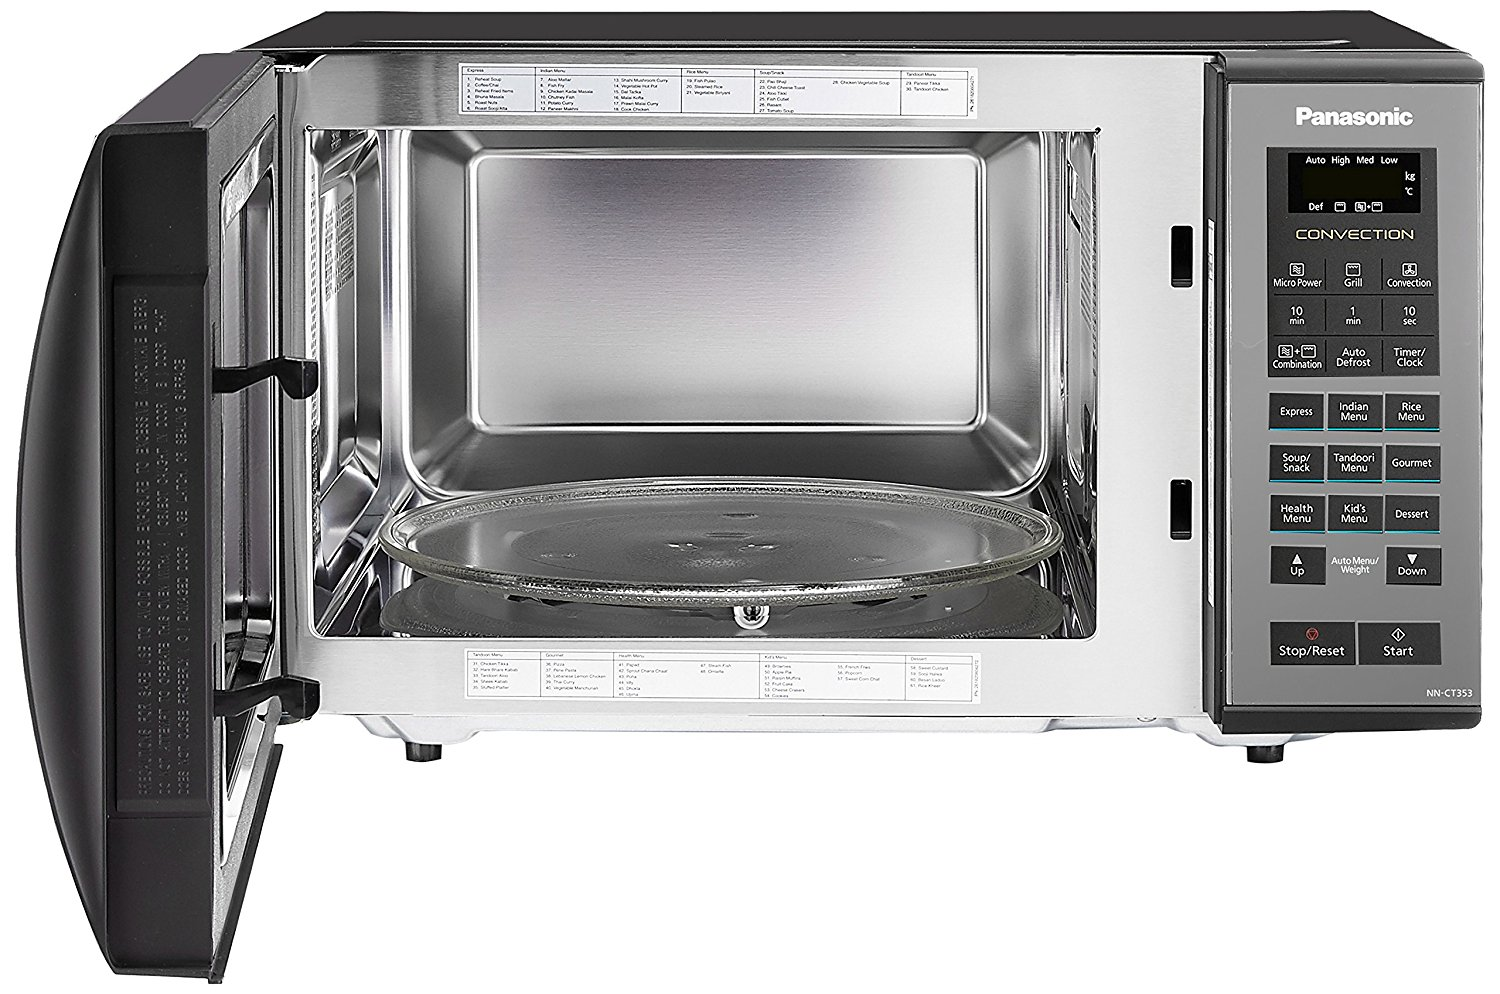 Panasonic 9 Liters Oven